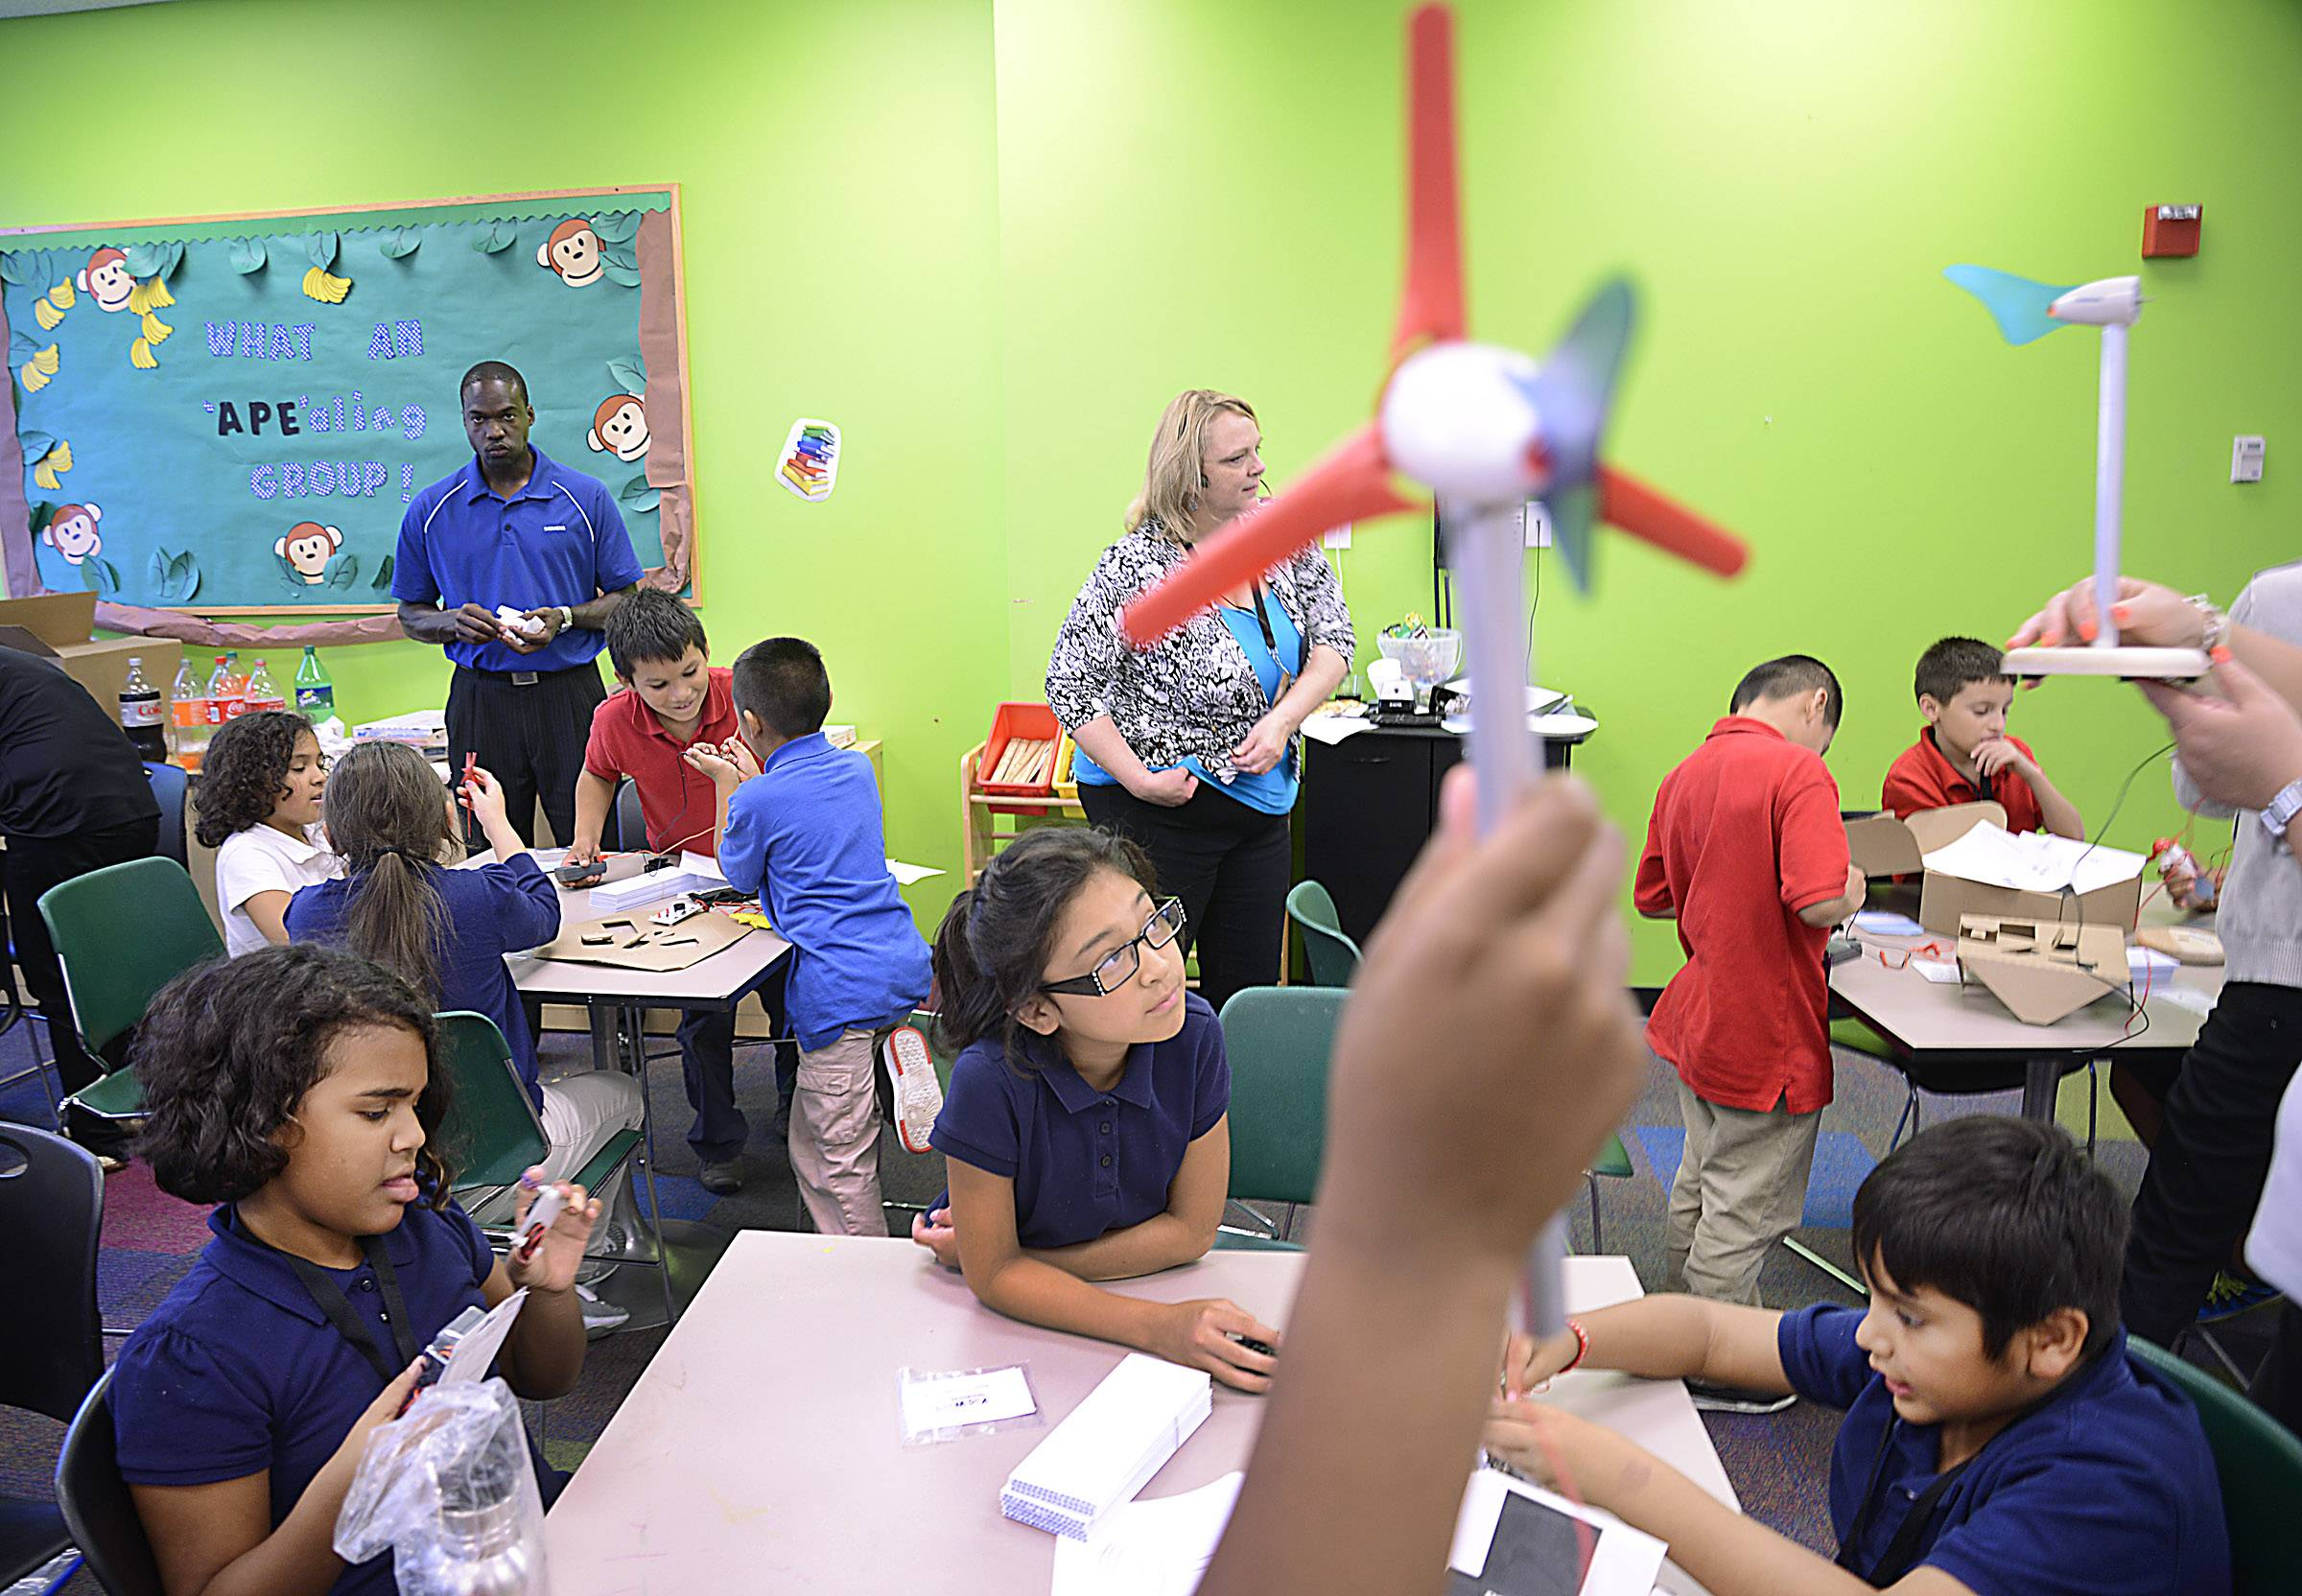 A miniature wind turbine is held in the air as students, including Carmen Rivera, left, Anahi Uribe and Isaac Garcia, all 9, start to build their project Tuesday at the Boys & Girls Club of Elgin. Siemens USA brought its STEM (Science, Technology, Engineering and Math) program to club members to teach them about clean energy and the possibility of technical careers.